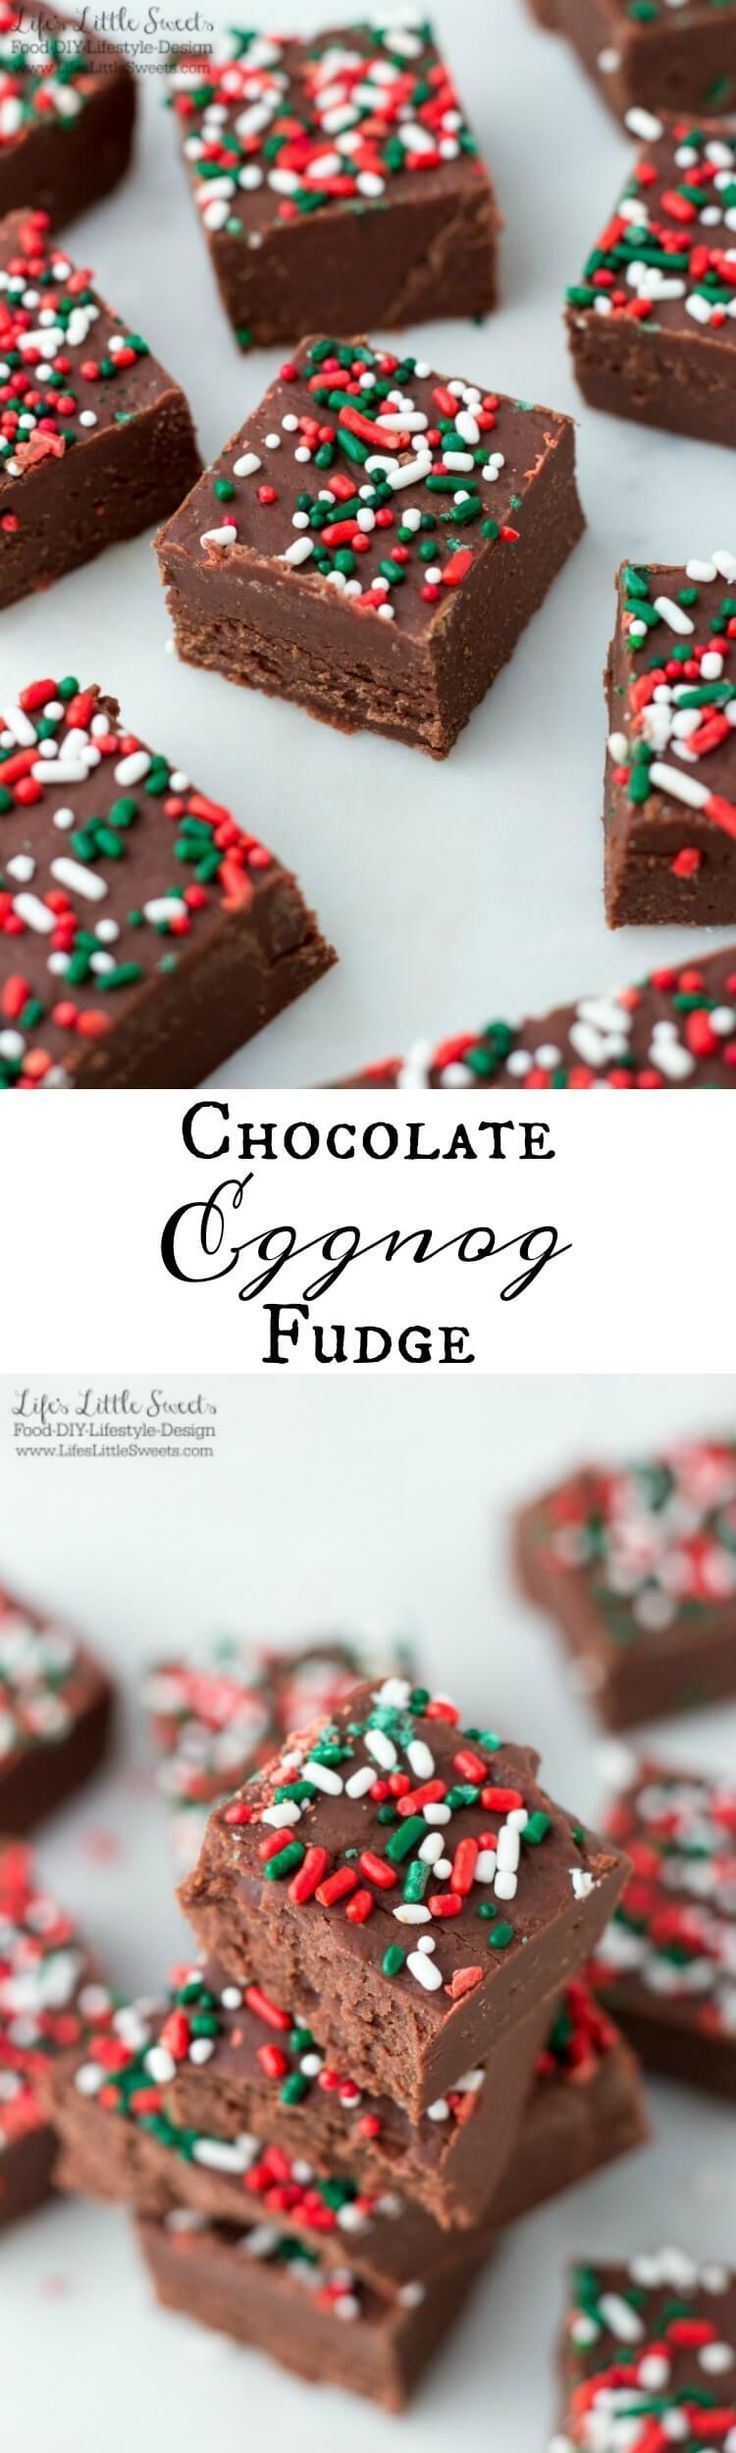 This Chocolate Eggnog Fudge is so smooth, chocolate-y and the perfect indulgence to enjoy yourself or give as a gift to someone special. It's infused with eggnog making it perfect for the Christmas & Holiday season! This recipe uses mini marshmallows making it an easy-to-make, quick fudge recipe.